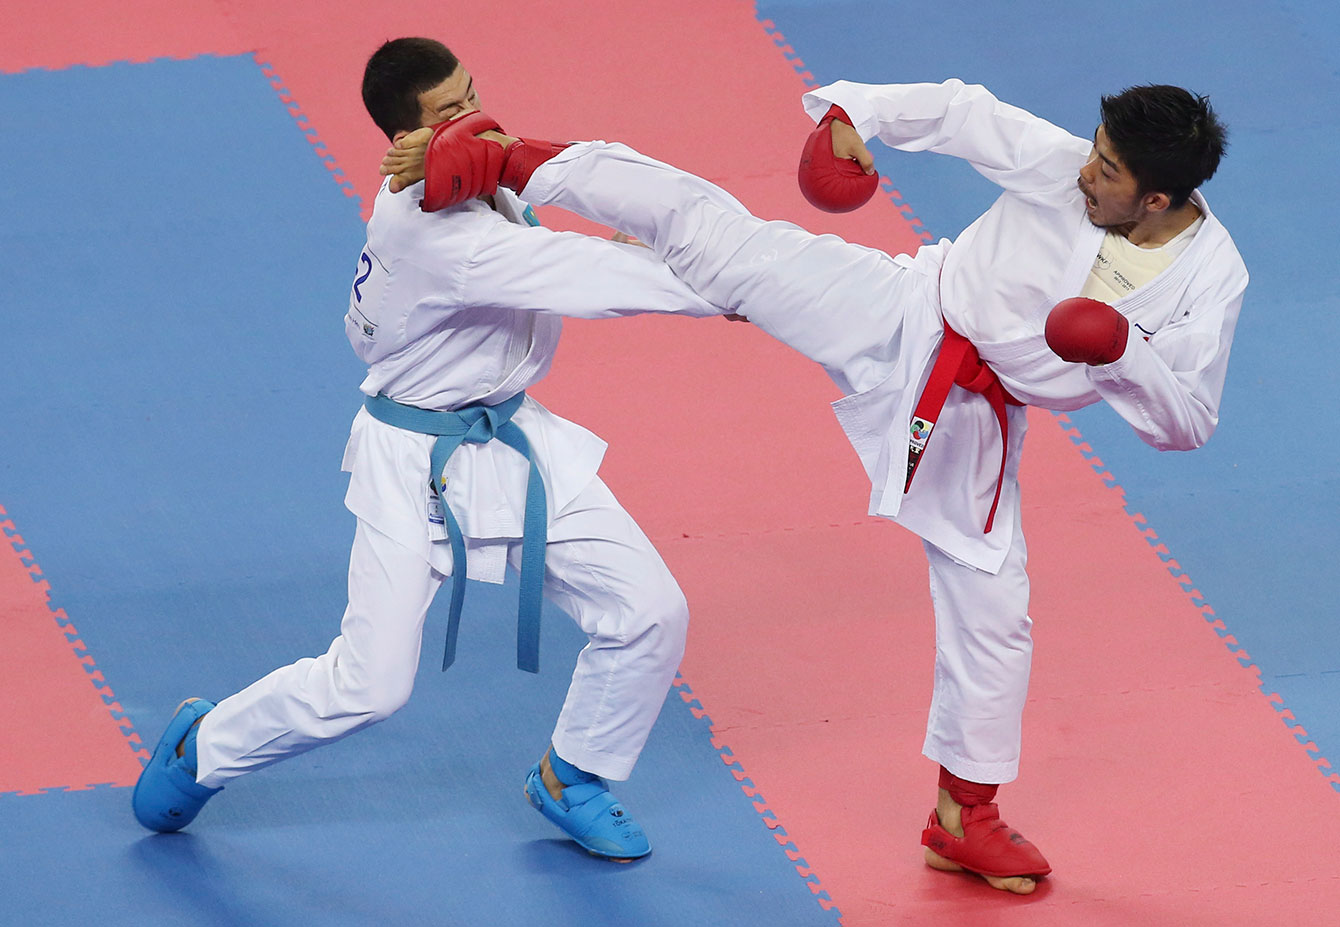 Karate is one of the sports hoping to be included in the Olympic programme.